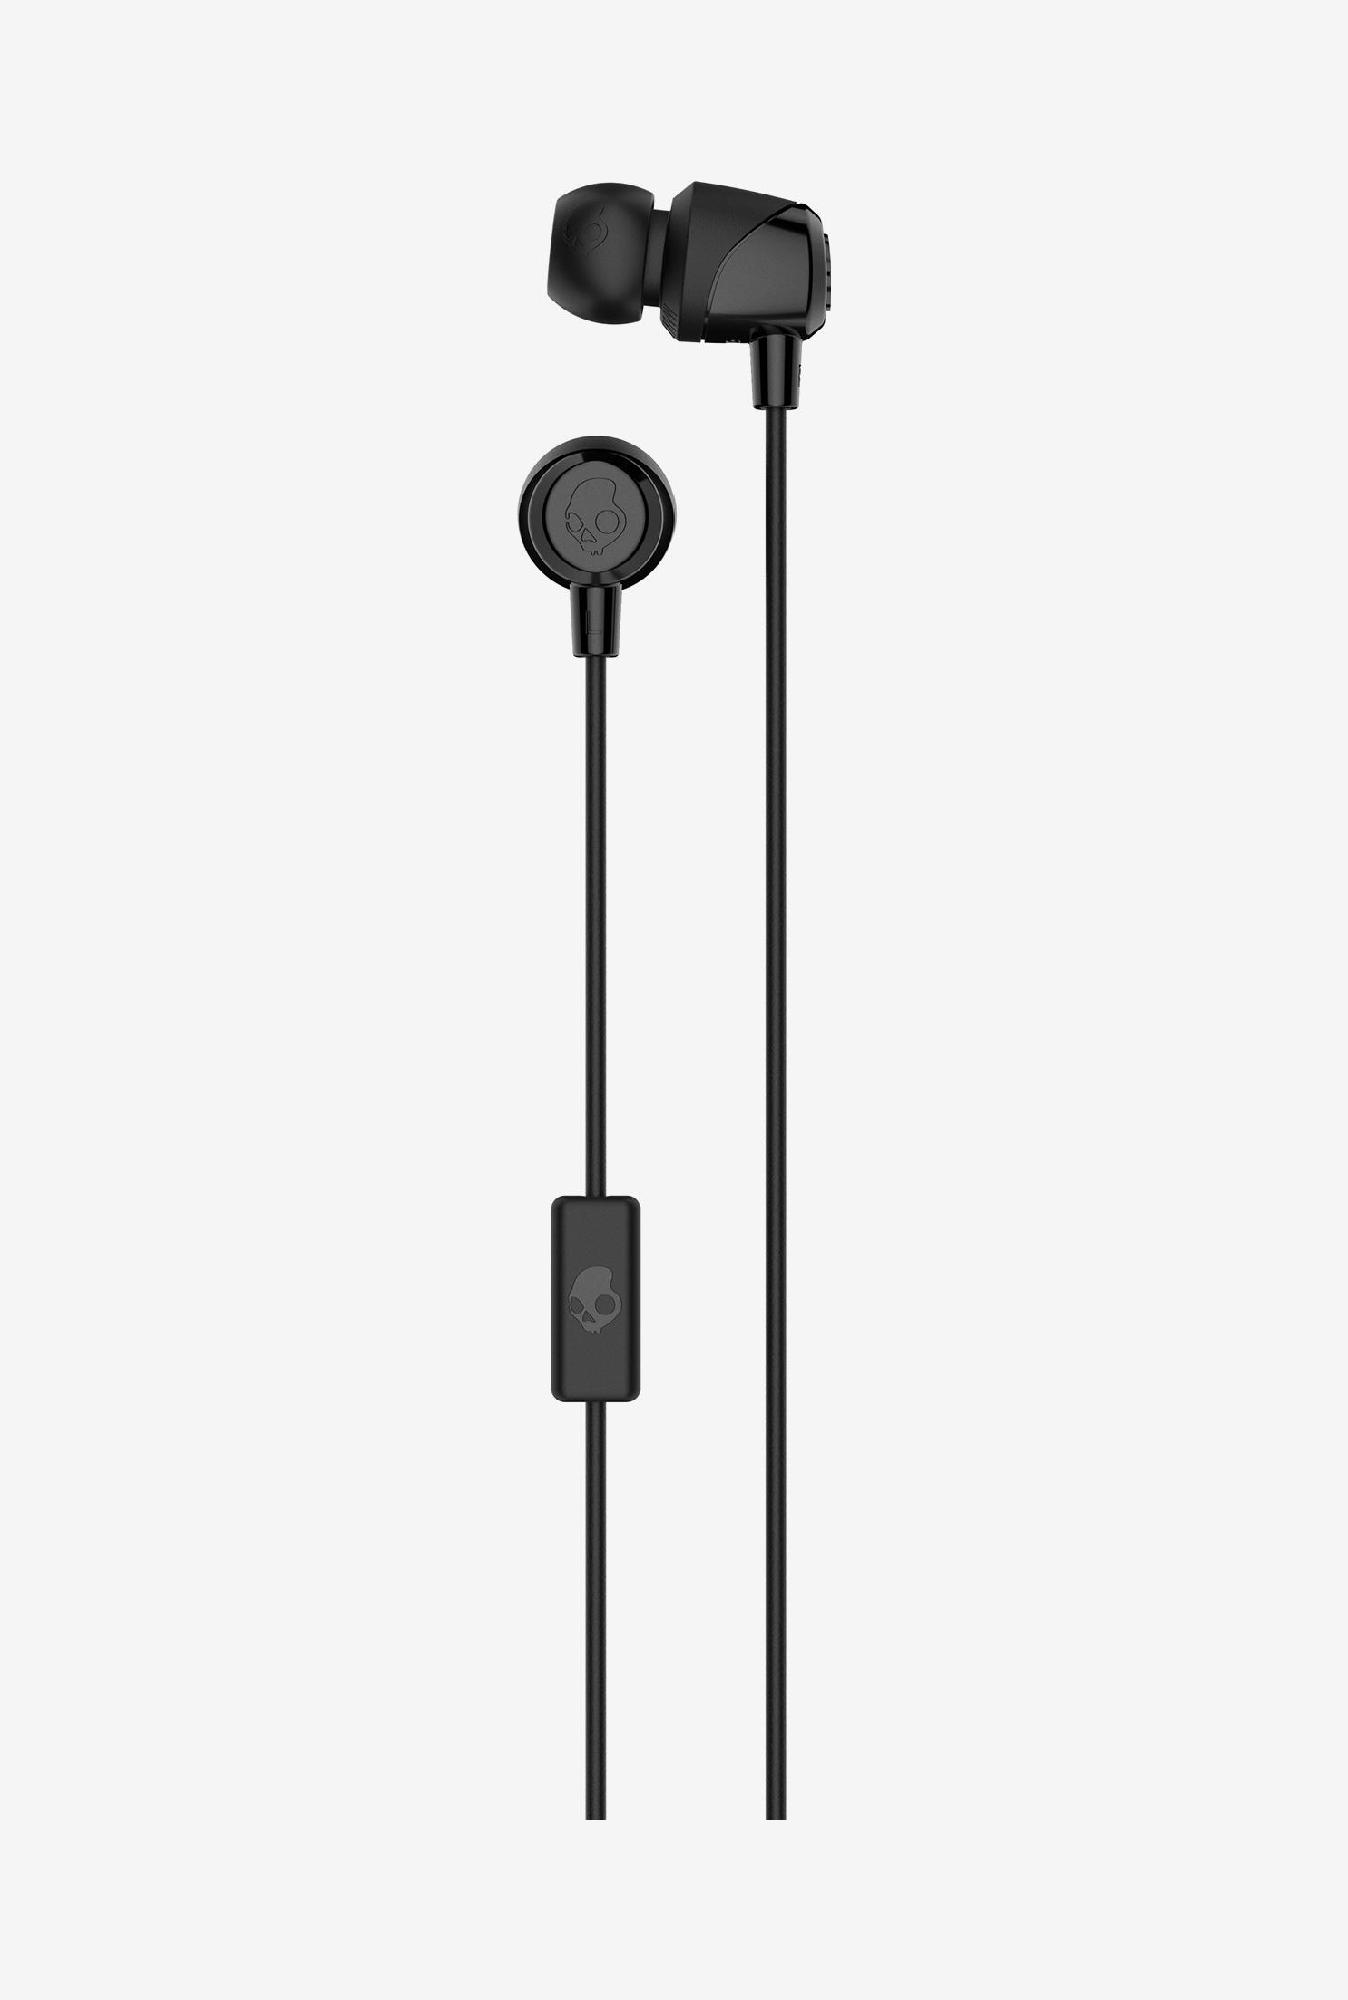 Skullcandy JIB In-Ear W/Pill Mic S2DUL-J448 (Black)